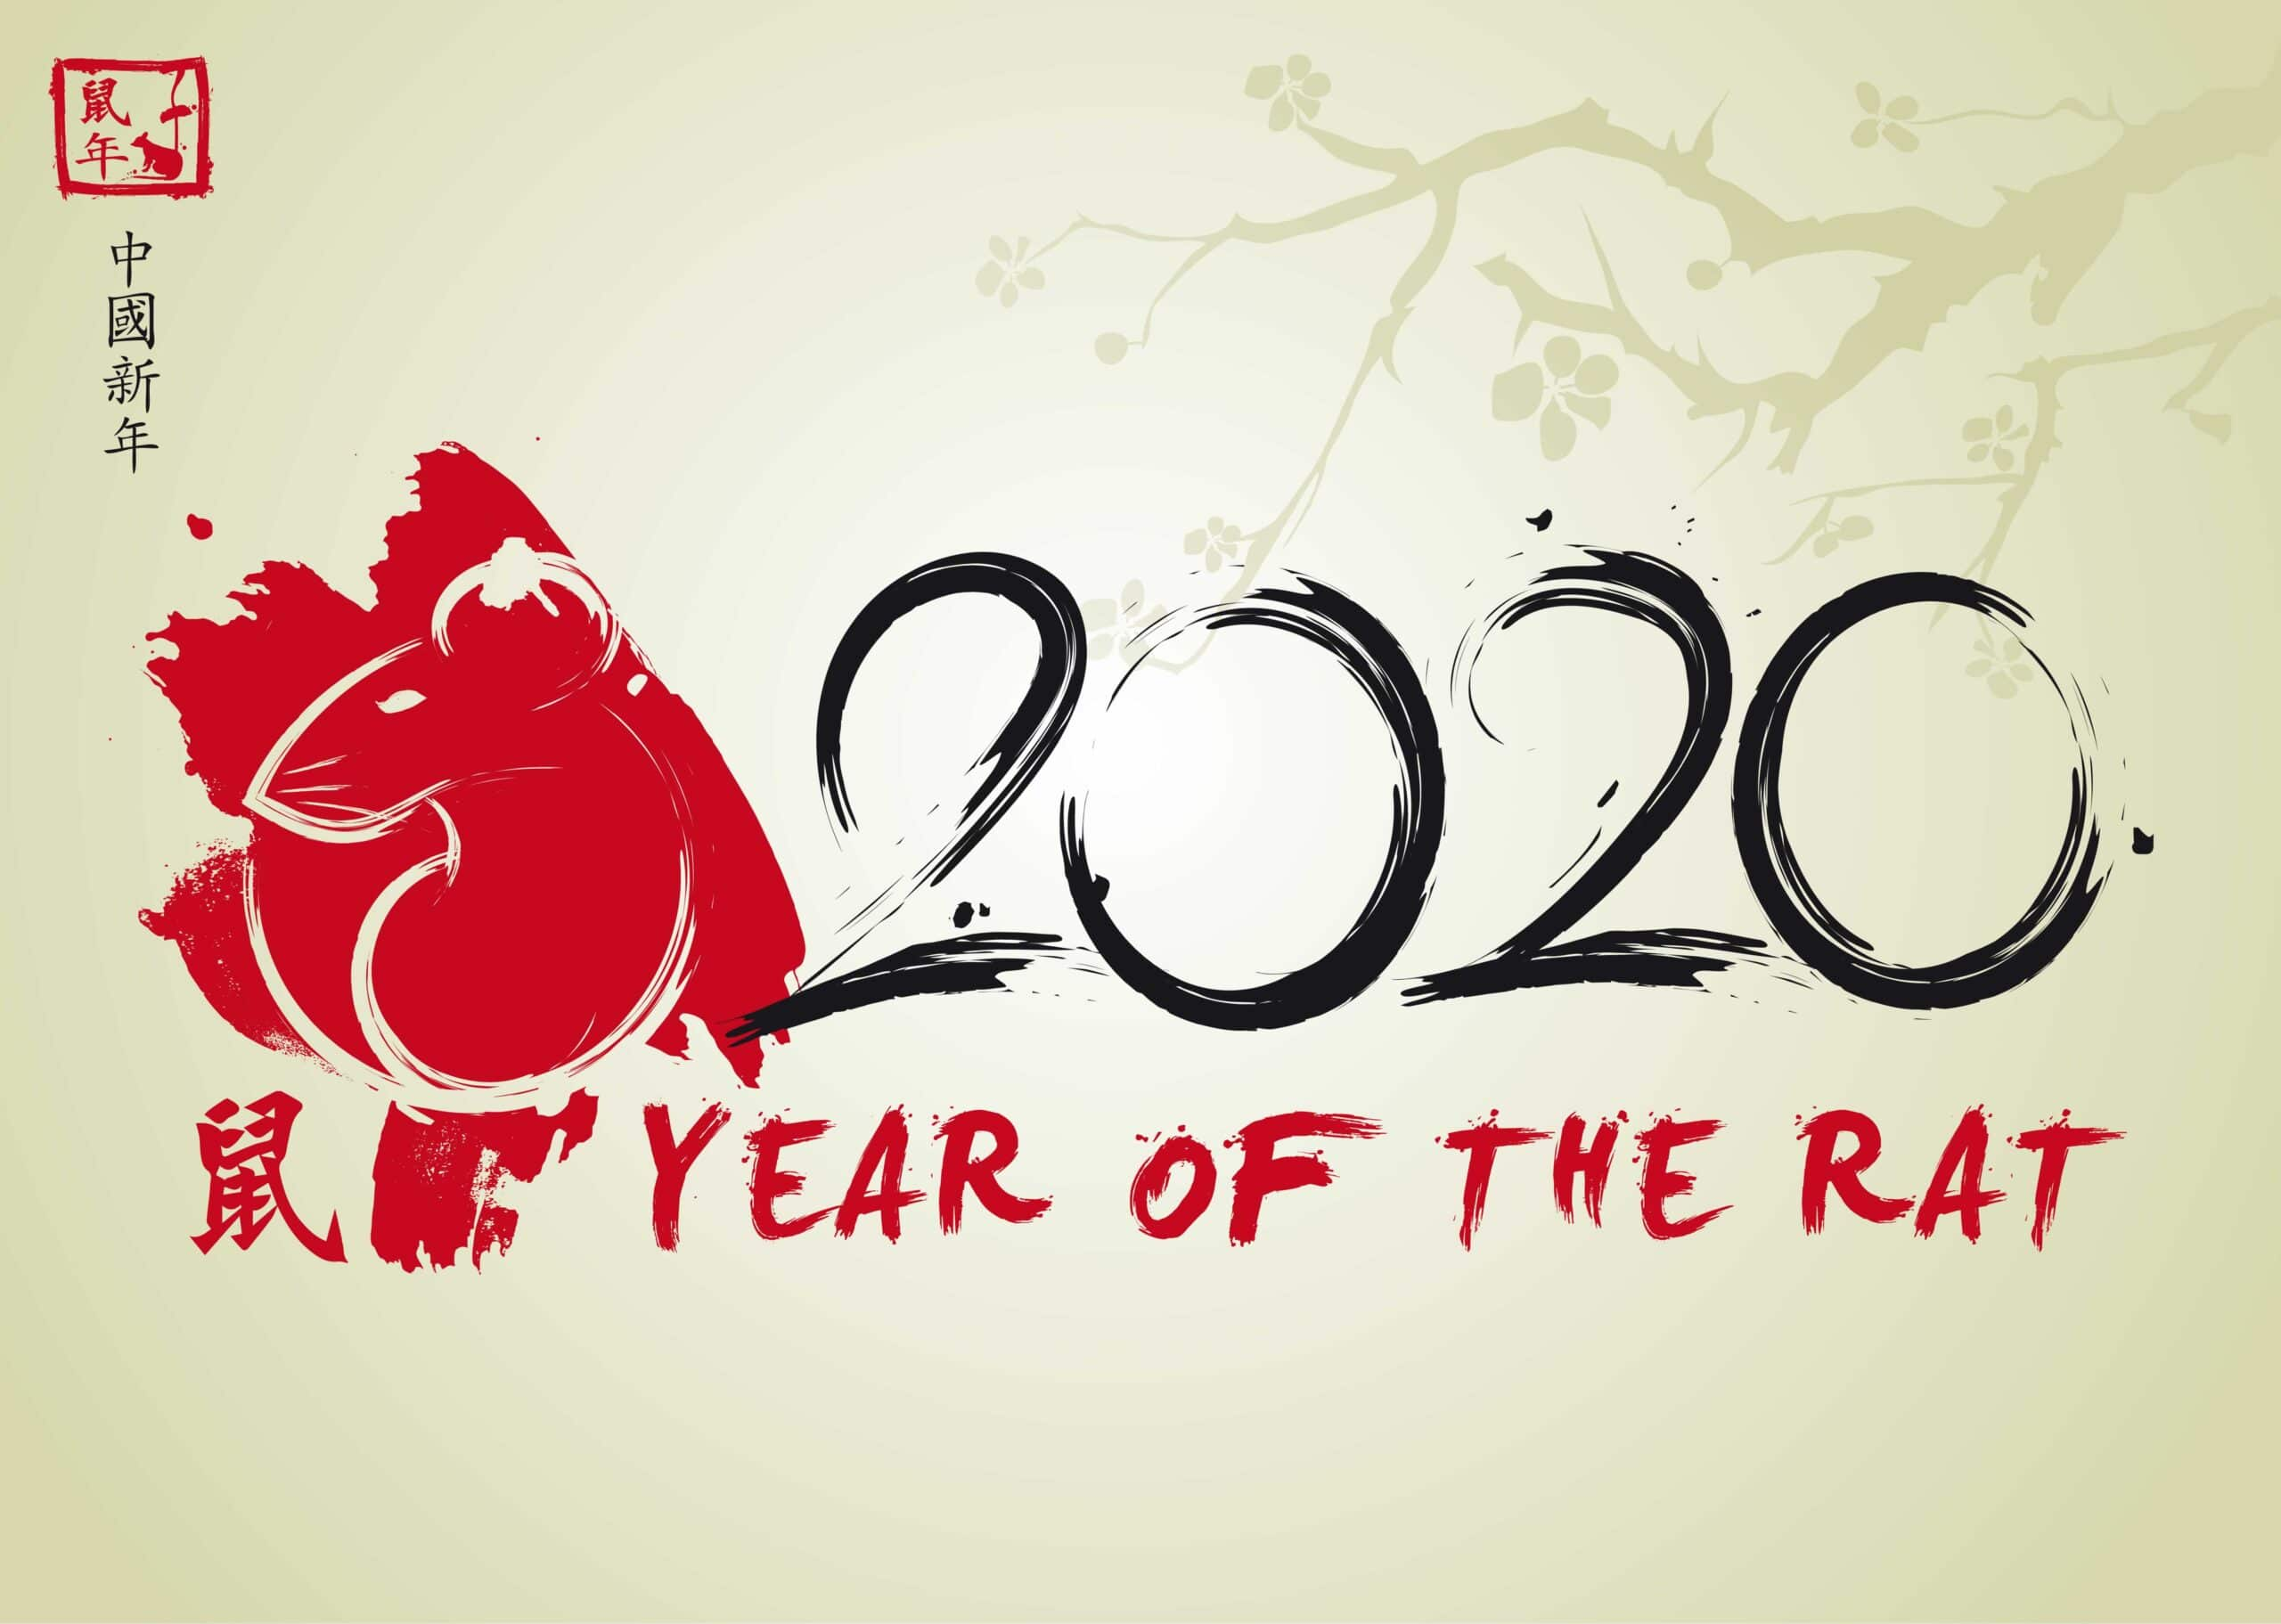 2020 Year of the Rat - annee du rat Chinese New Year l